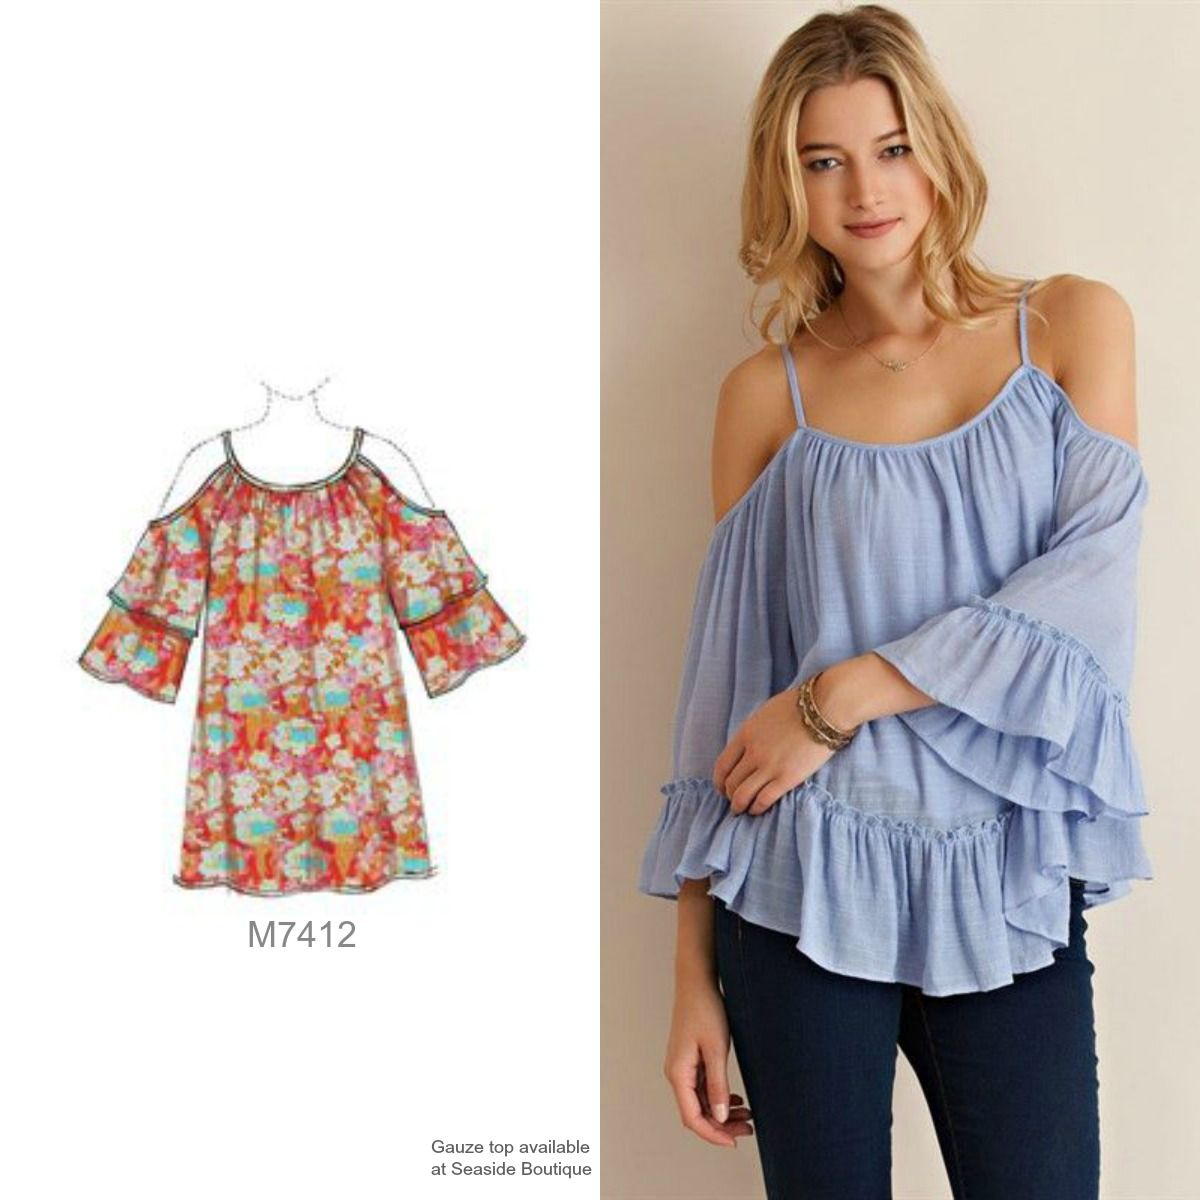 ebe0c8f86ee Sew the cold shoulder look with M7412 top pattern from McCall's ...